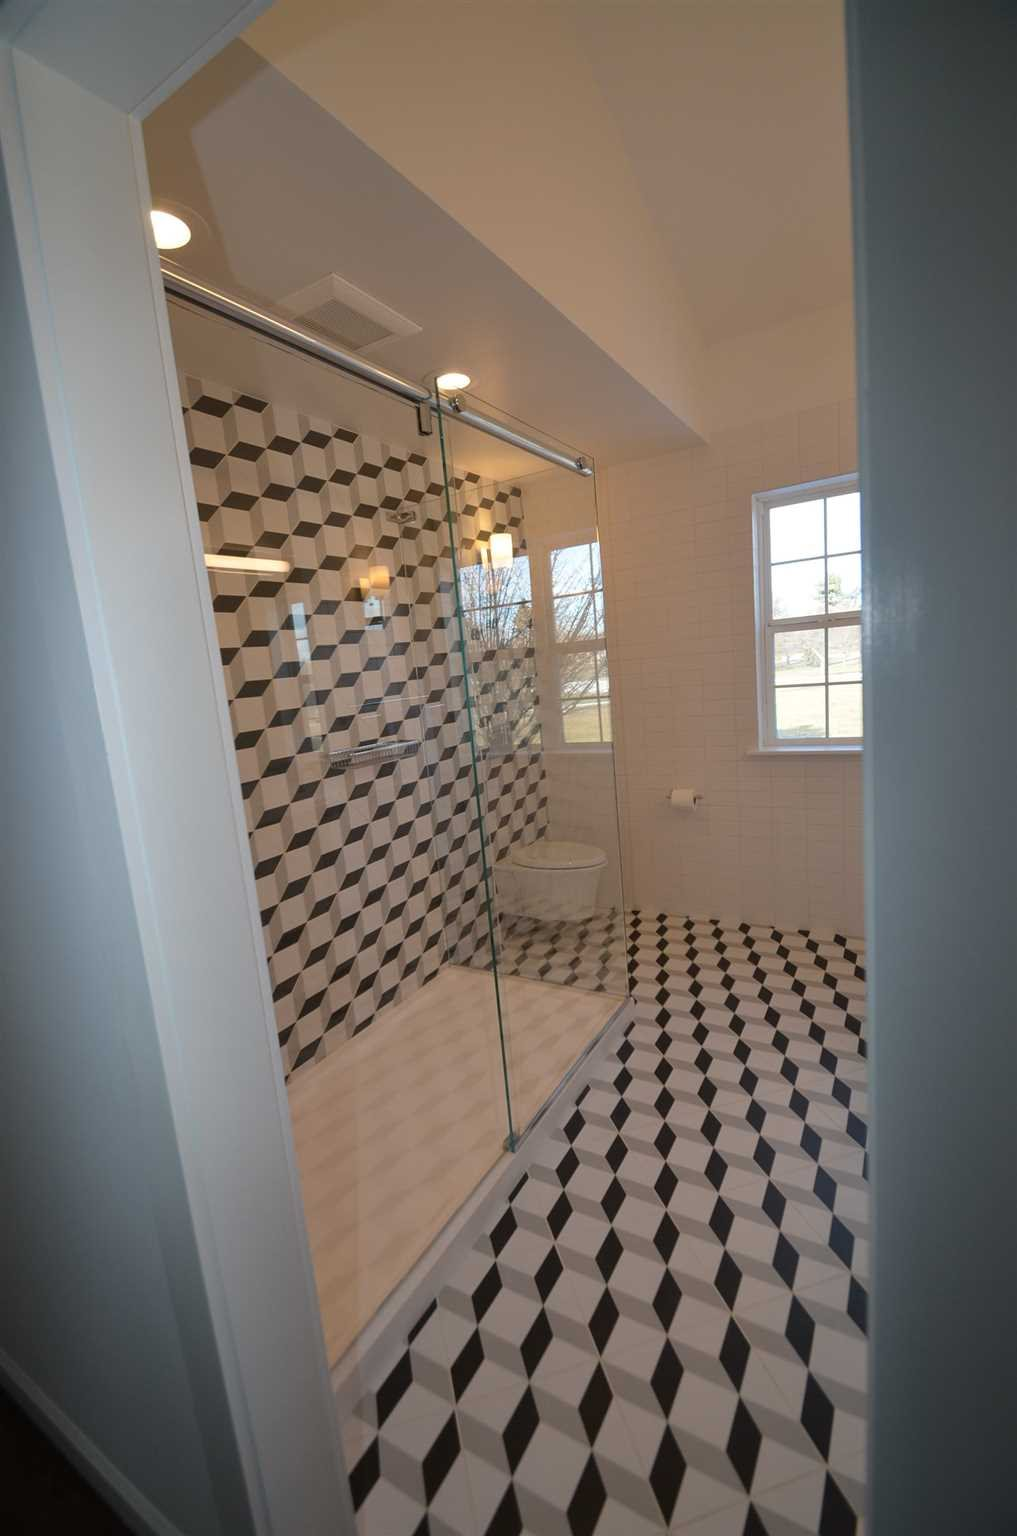 Additional photo for property listing at 84 FAIRWAY Lane 84 FAIRWAY Lane Red Hook, New York 12571 United States